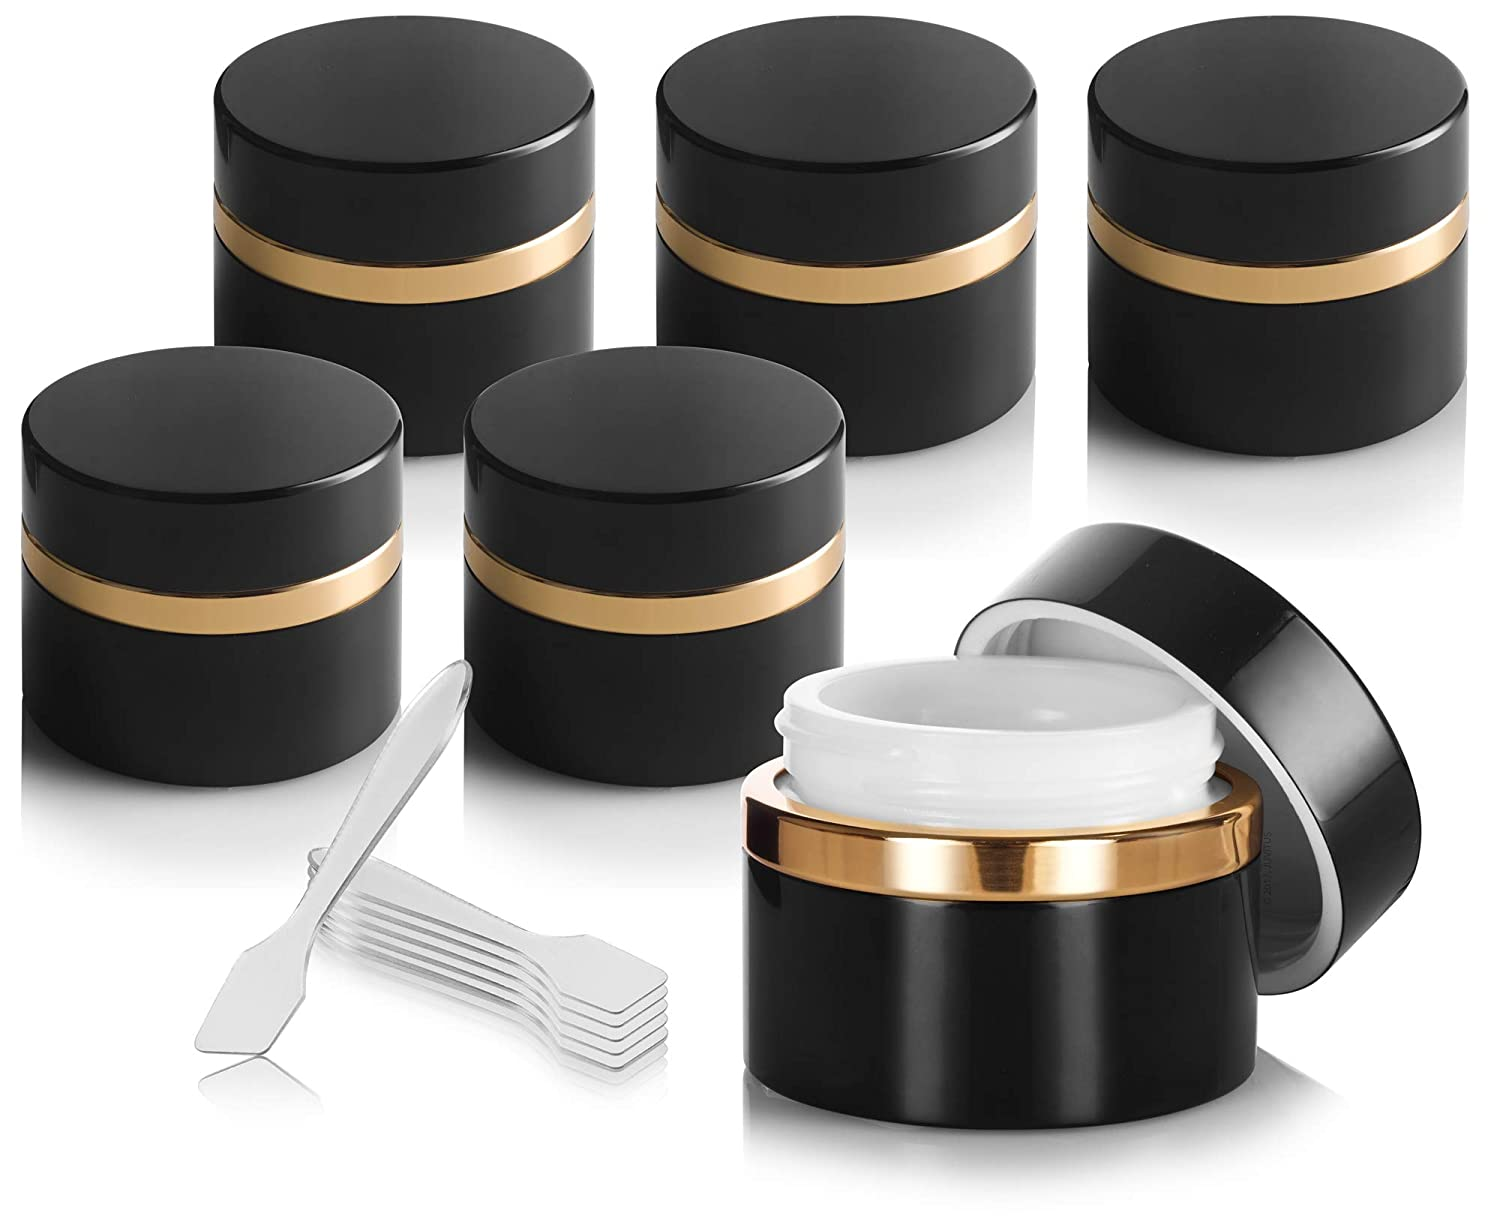 Black Glass Professional Heavy Thick Wall Balm Jar with Gold Collar 6 PACK – 1.7 oz 50 ml Spatulas for beauty balms, ointments, skin cream, eye cream, moisturizers, and salves